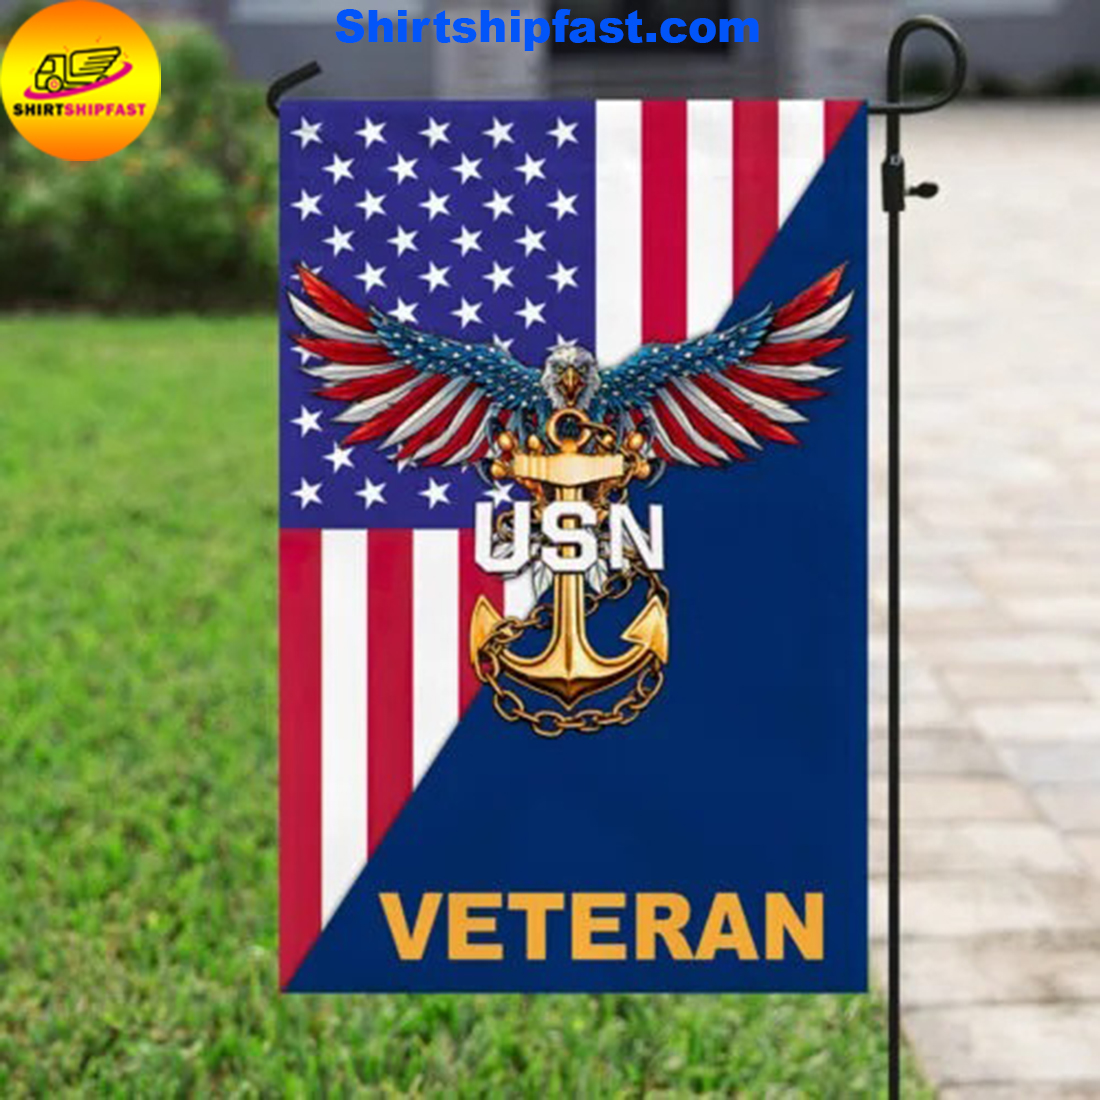 United States Navy American Eagle Veteran Flag - Picture 3